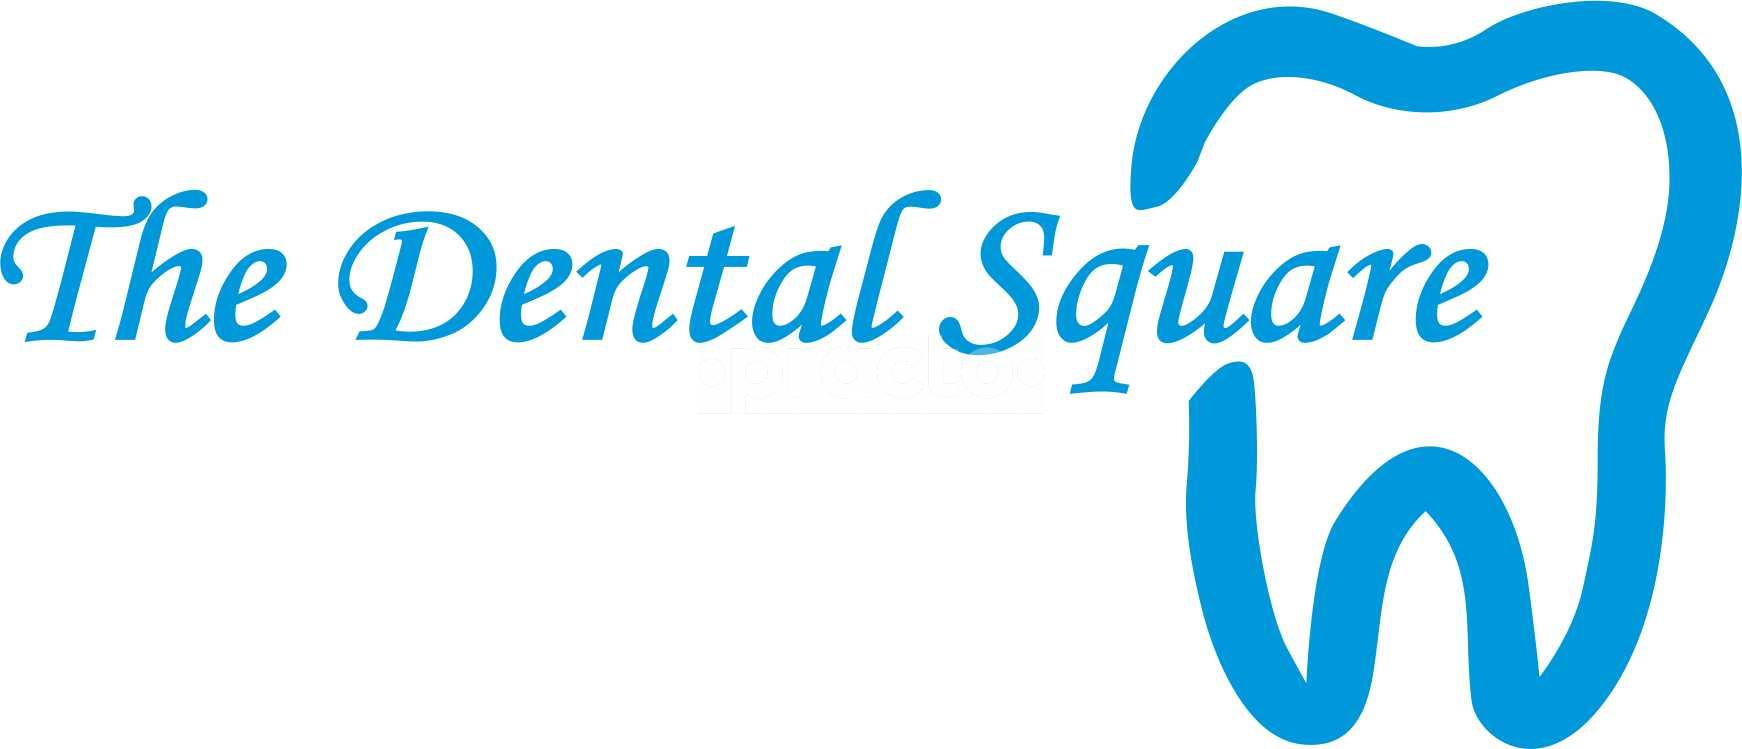 The Dental Square Multispeciality Dental Clinic